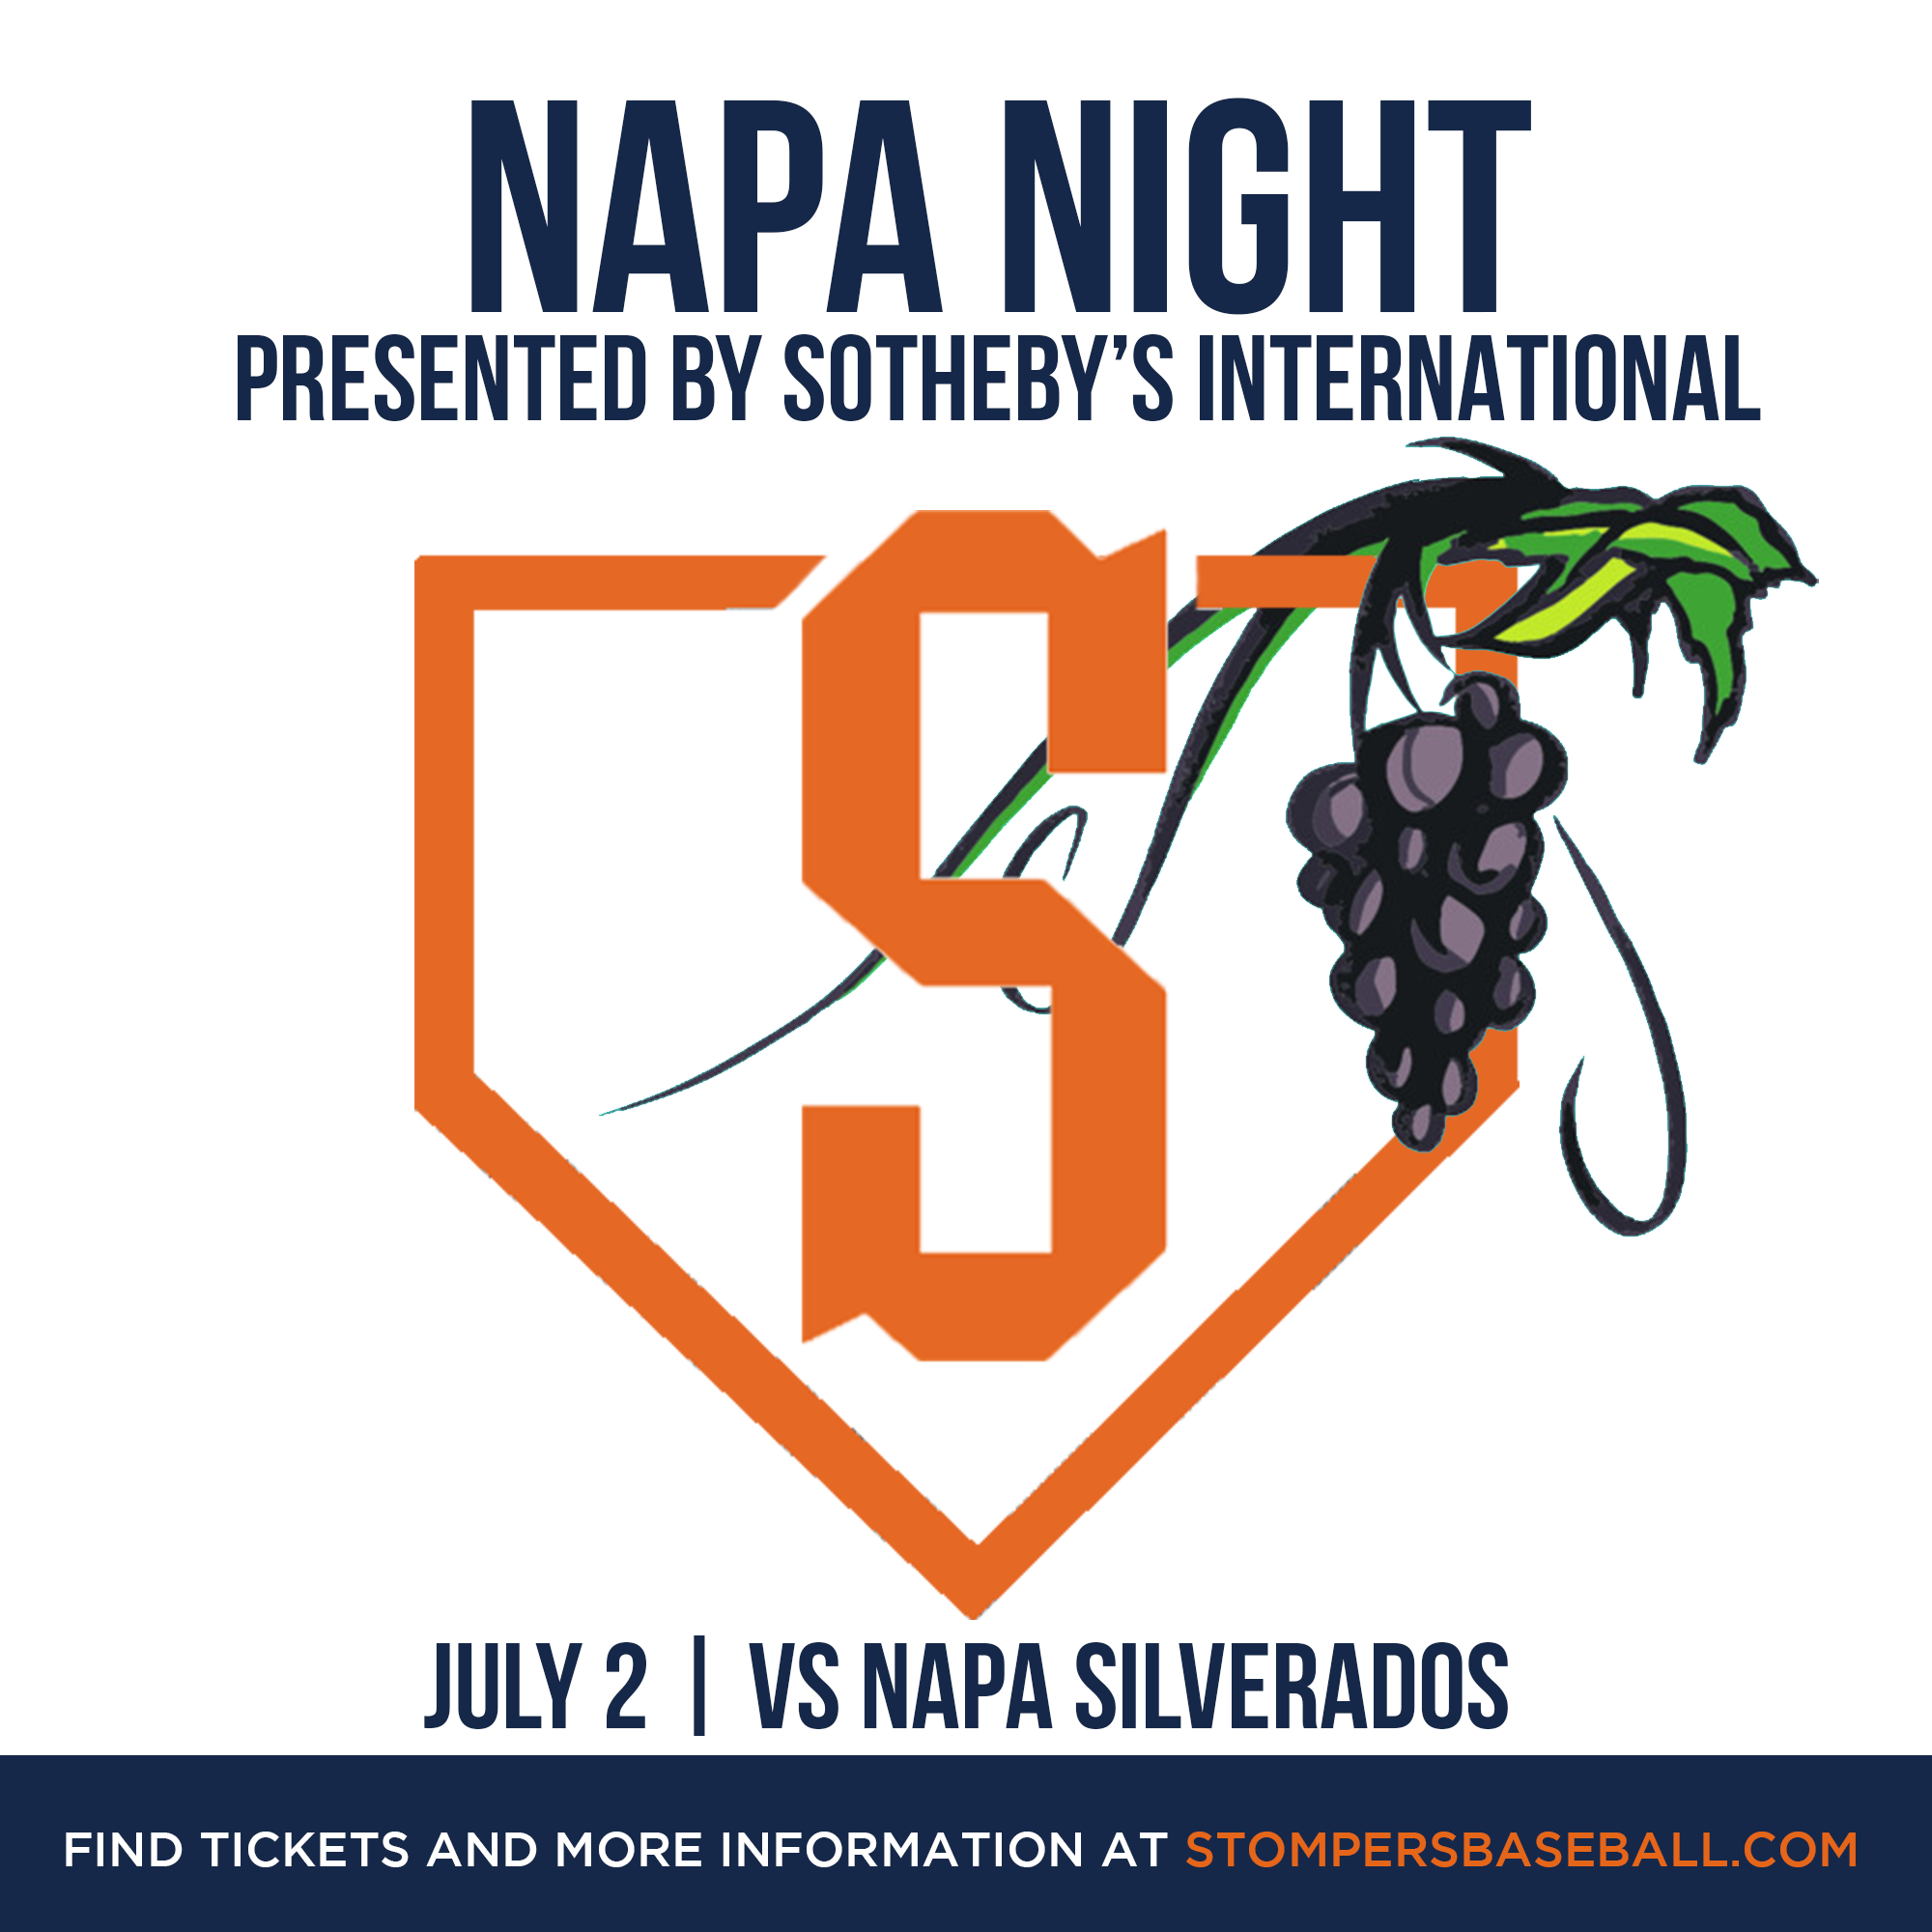 July 2: Napa Night - come out and watch the Stompers take on Napa Silverados for Napa night!